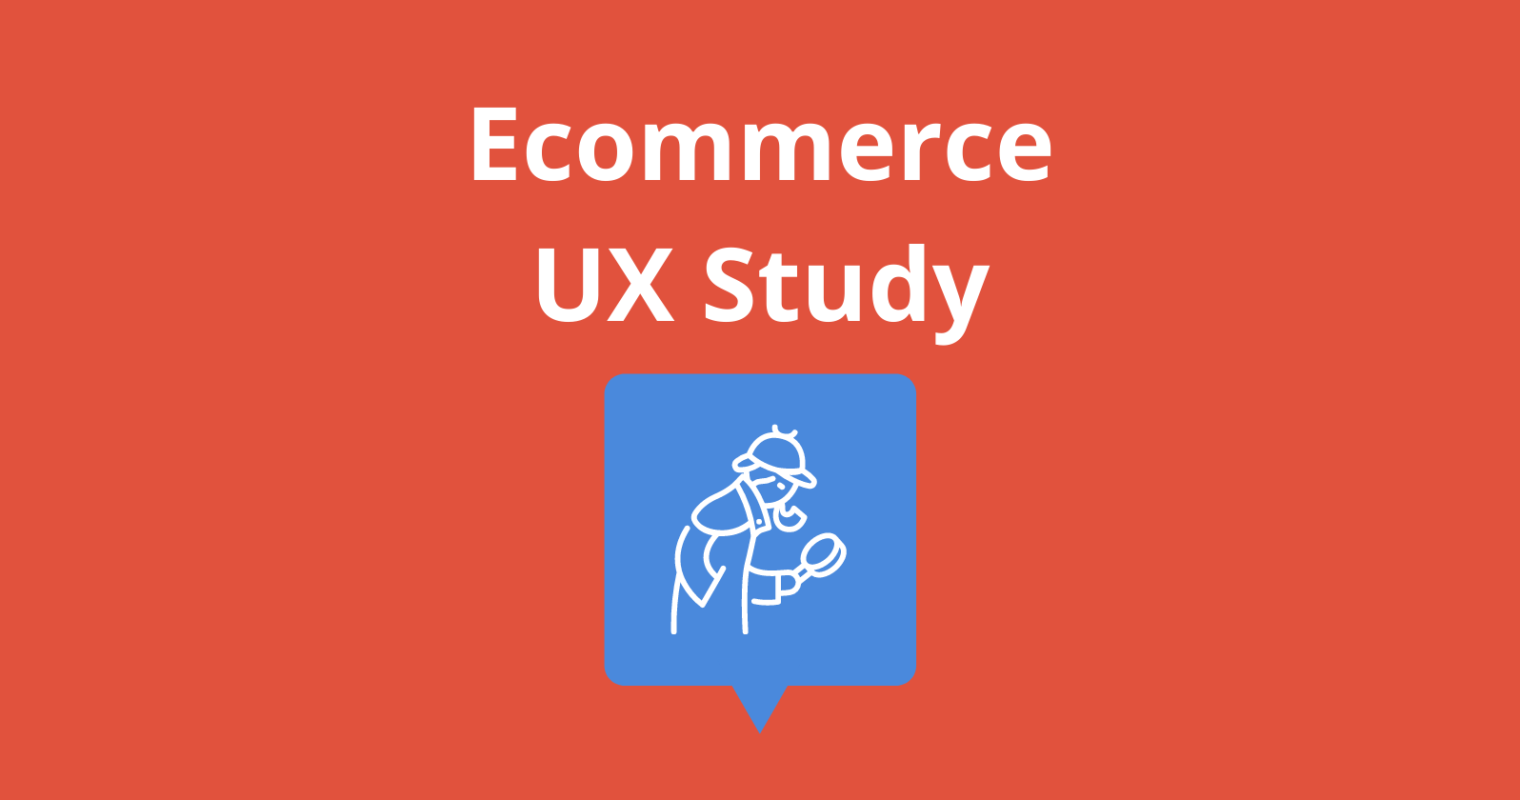 How to Increase Ecommerce Sales with a Usability Study